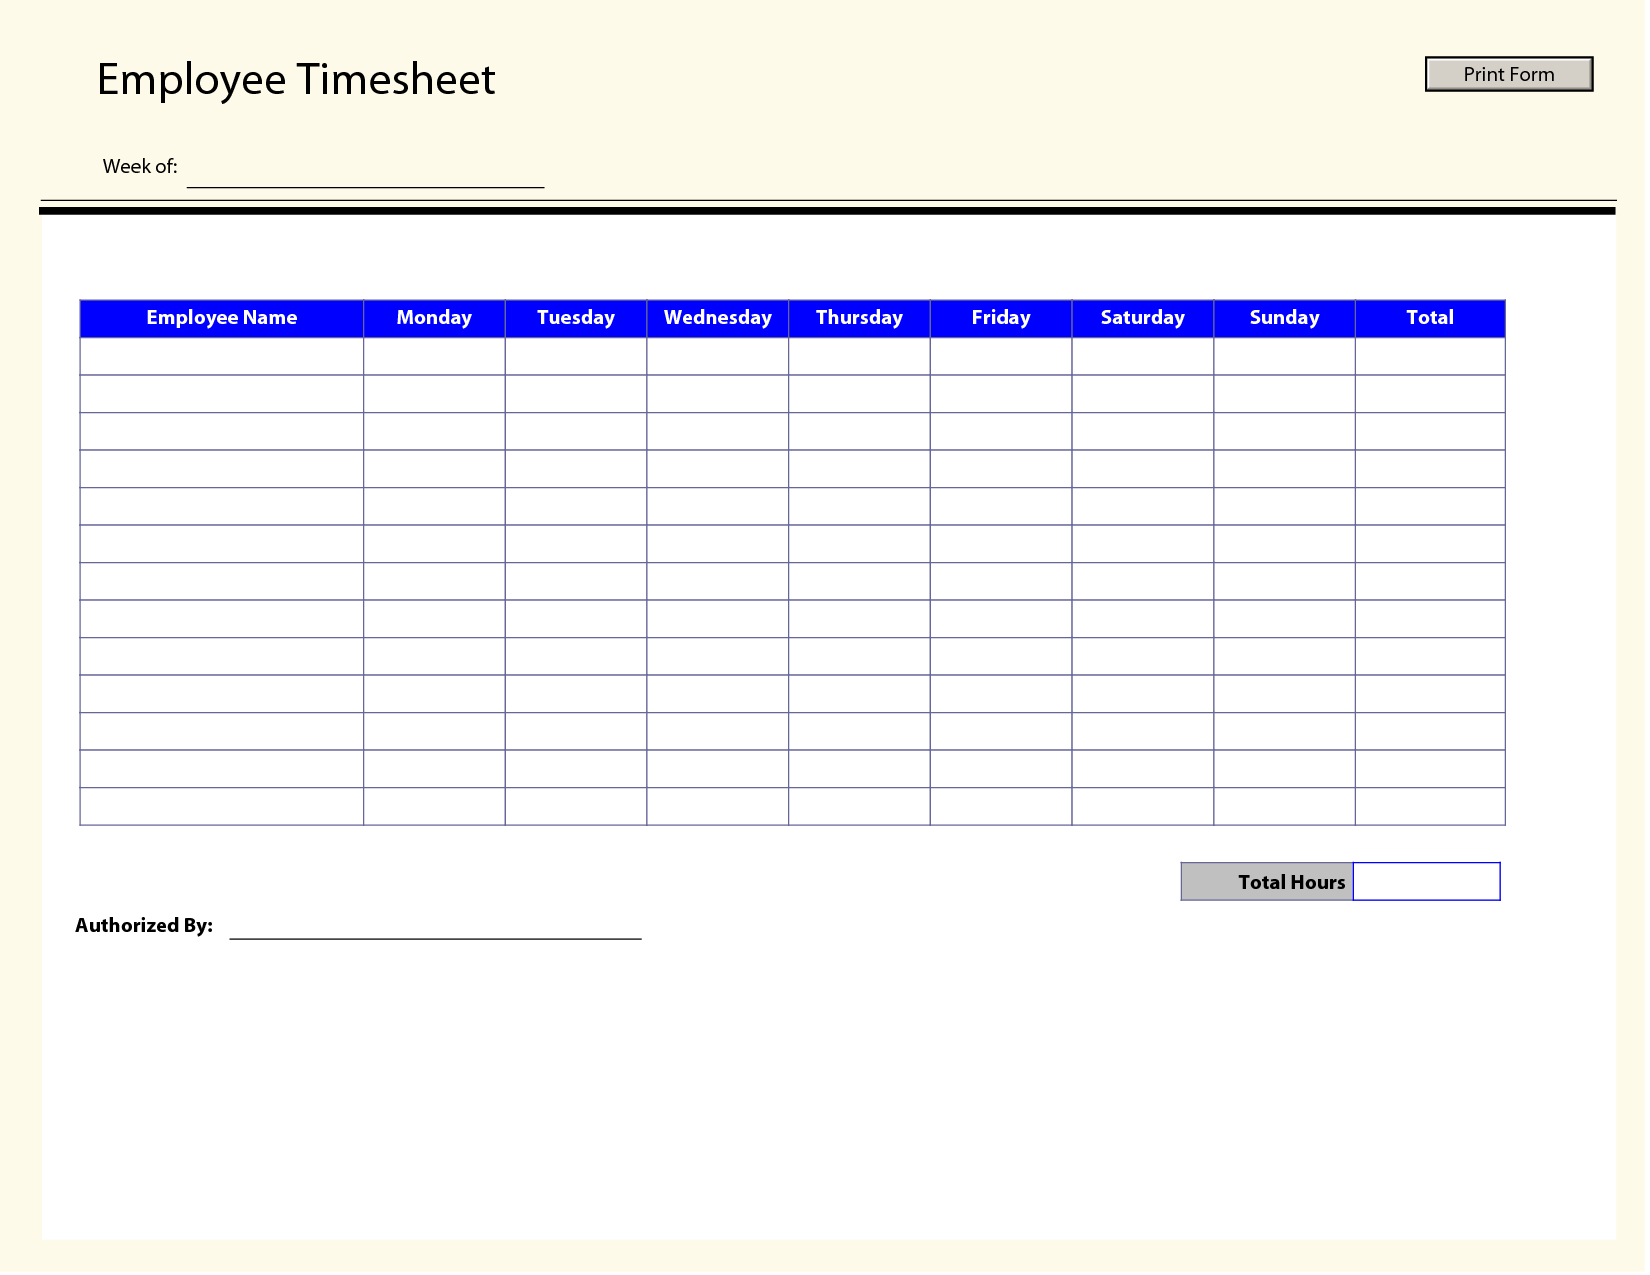 Printable Time Sheets | Free Printable Employee Timesheets